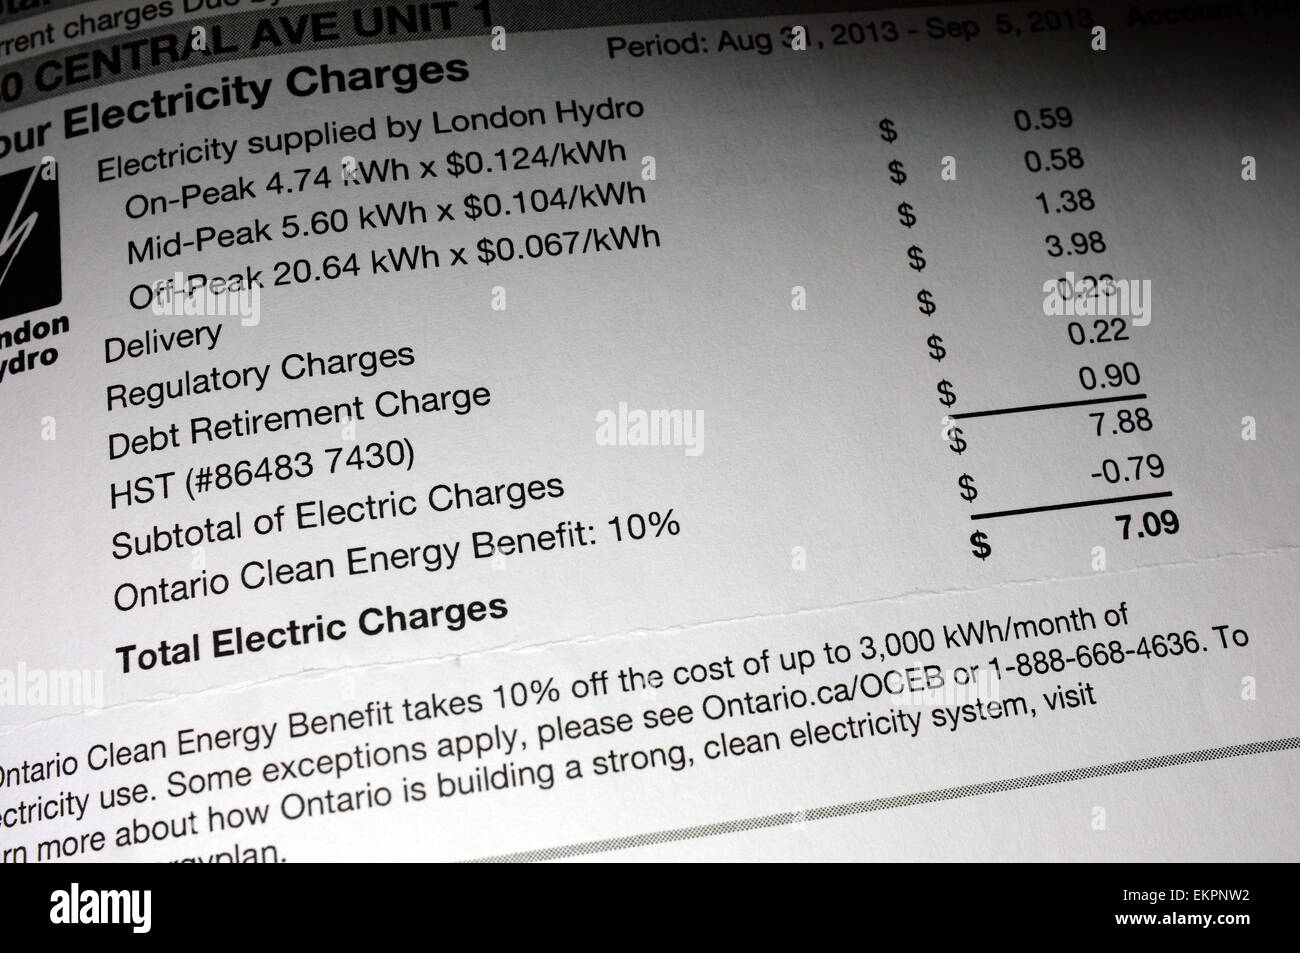 Electricity charges paperwork. Stock Photo